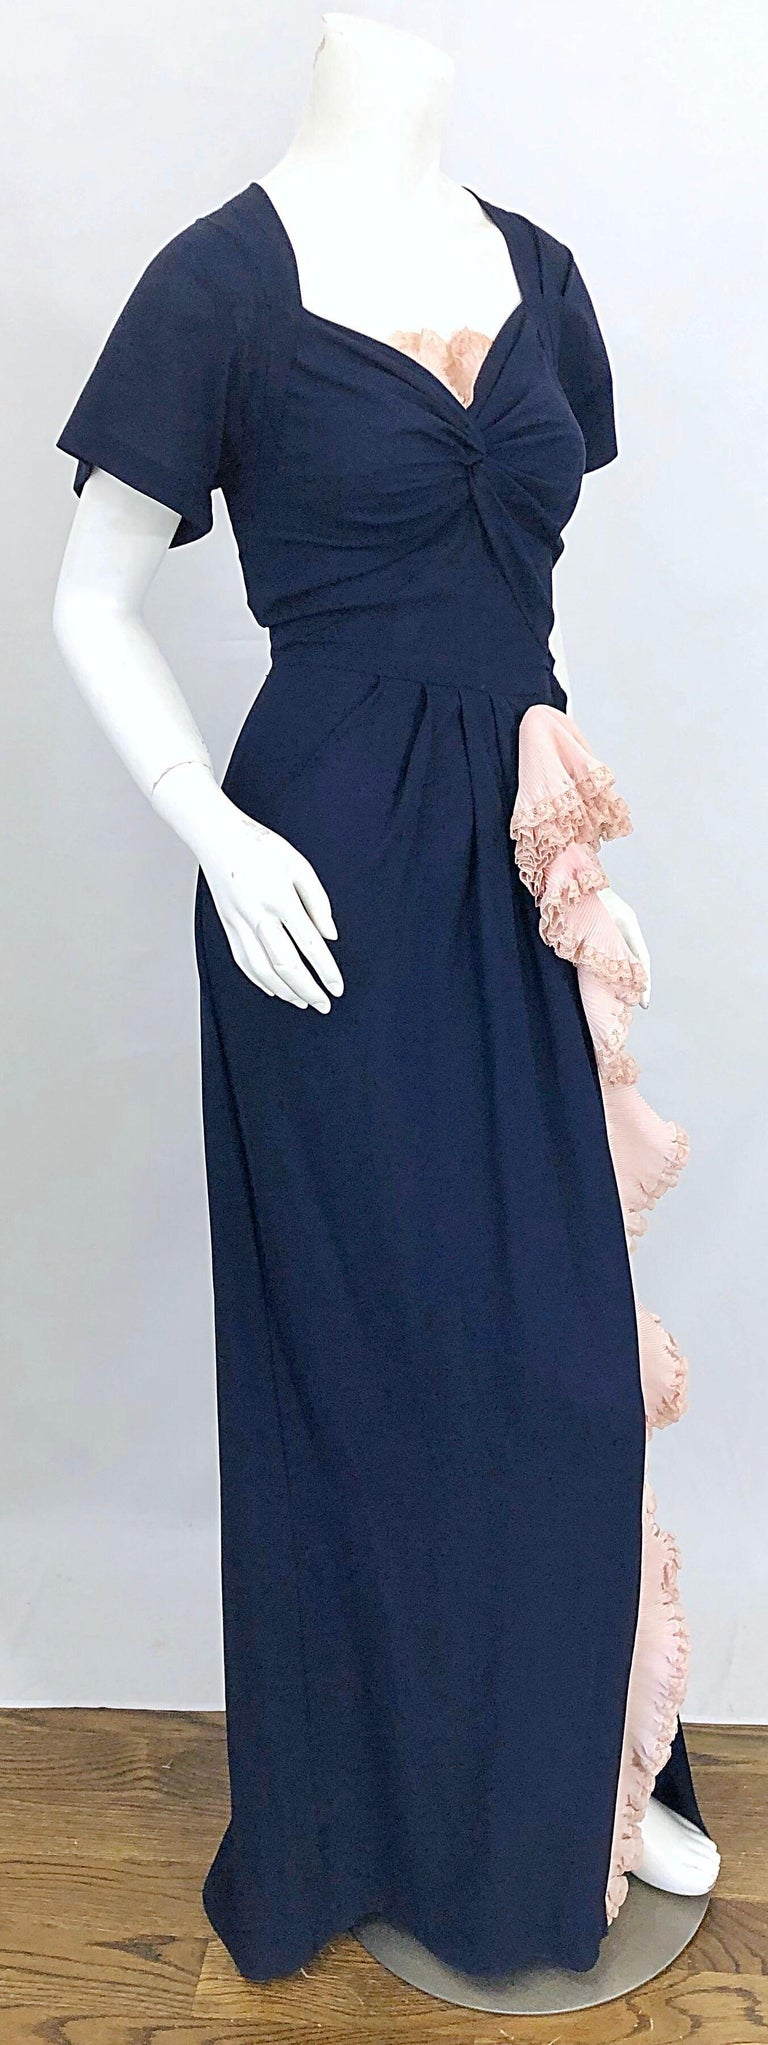 1940s Demi Couture Navy Blue + Pale Pink Short Sleeve 40s Vintage Gown / Dress For Sale 7